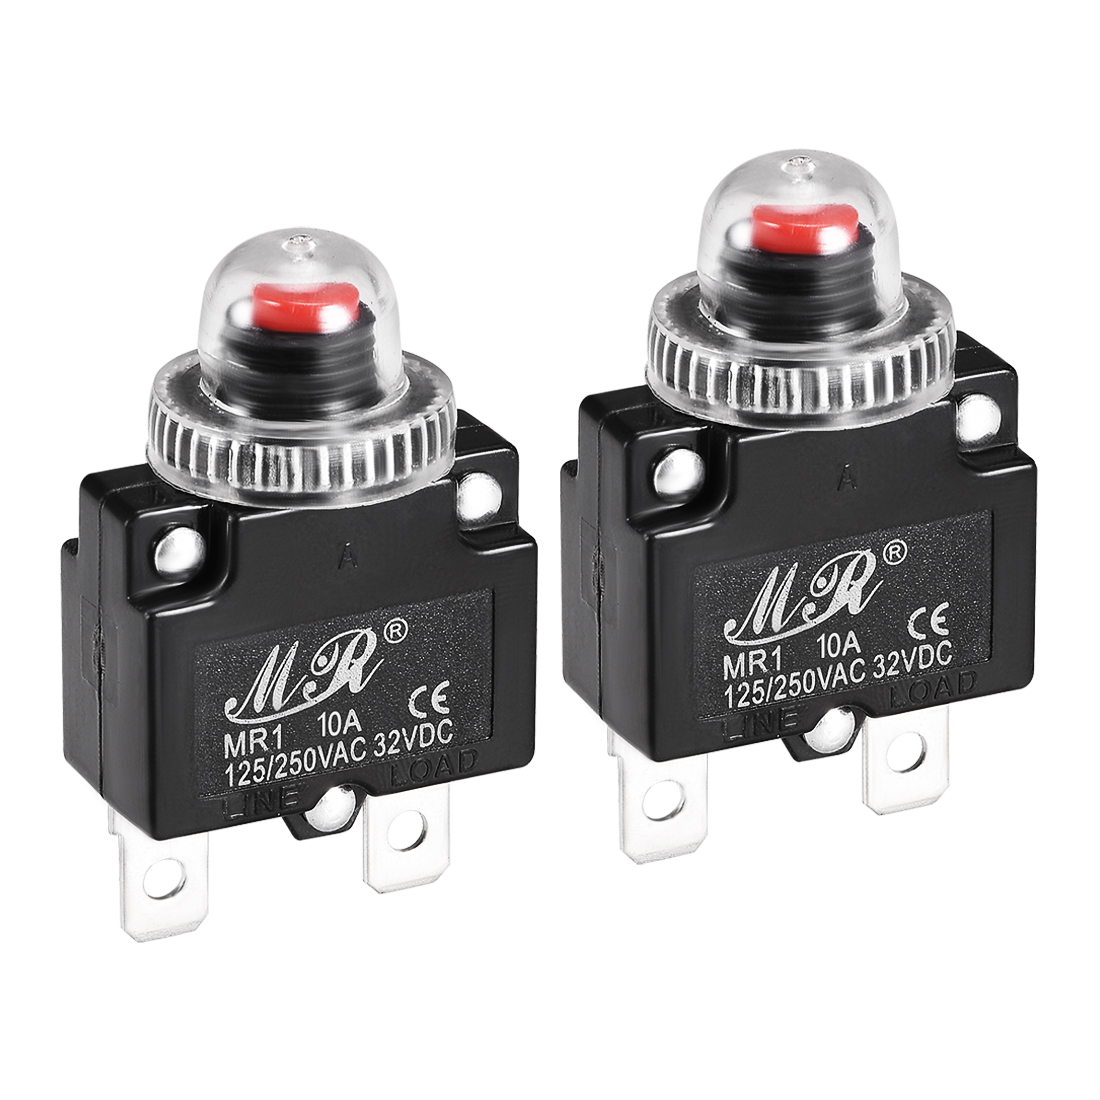 2 Pcs 10A 125/250V Push Button Reset Overload Protector Thermal Circuit Breaker